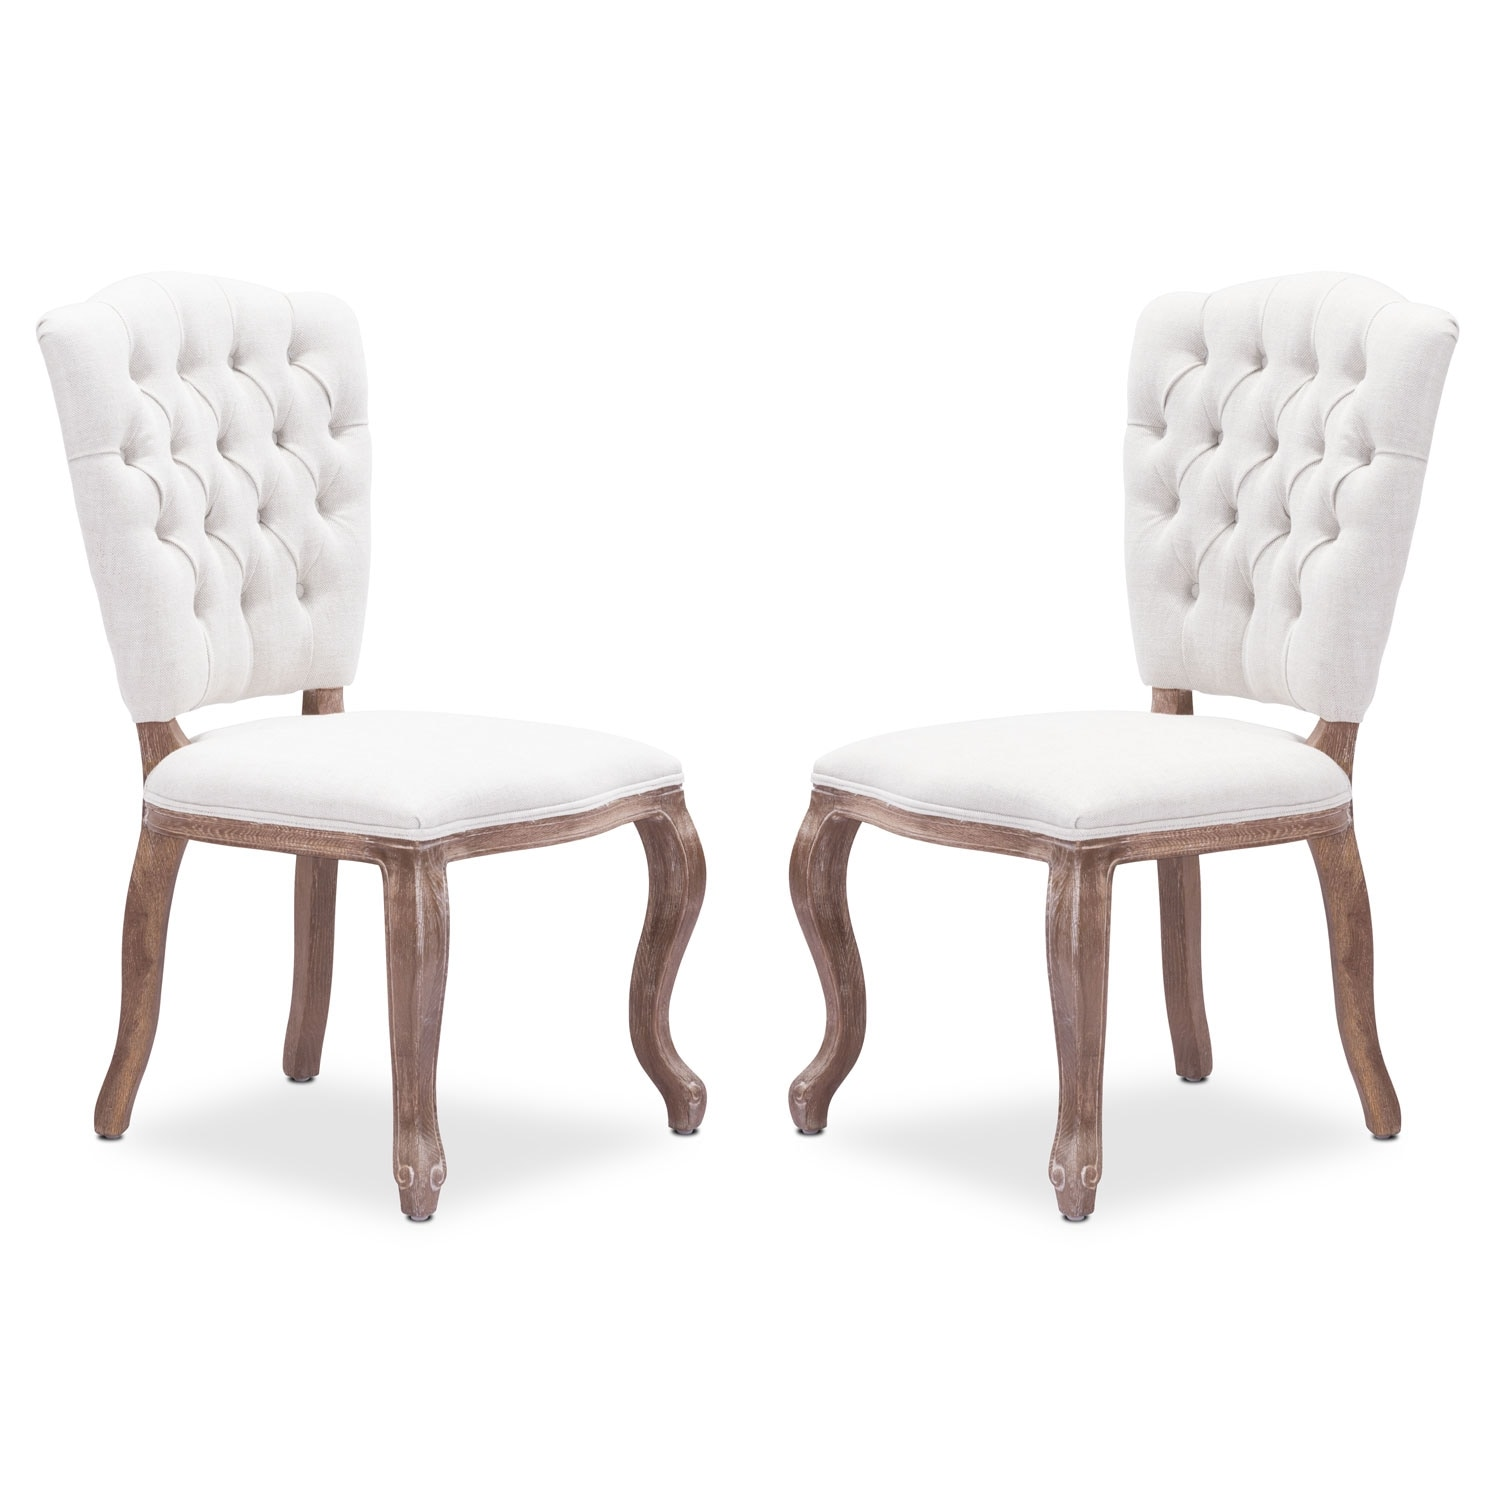 Trinity 2-Pack Chairs